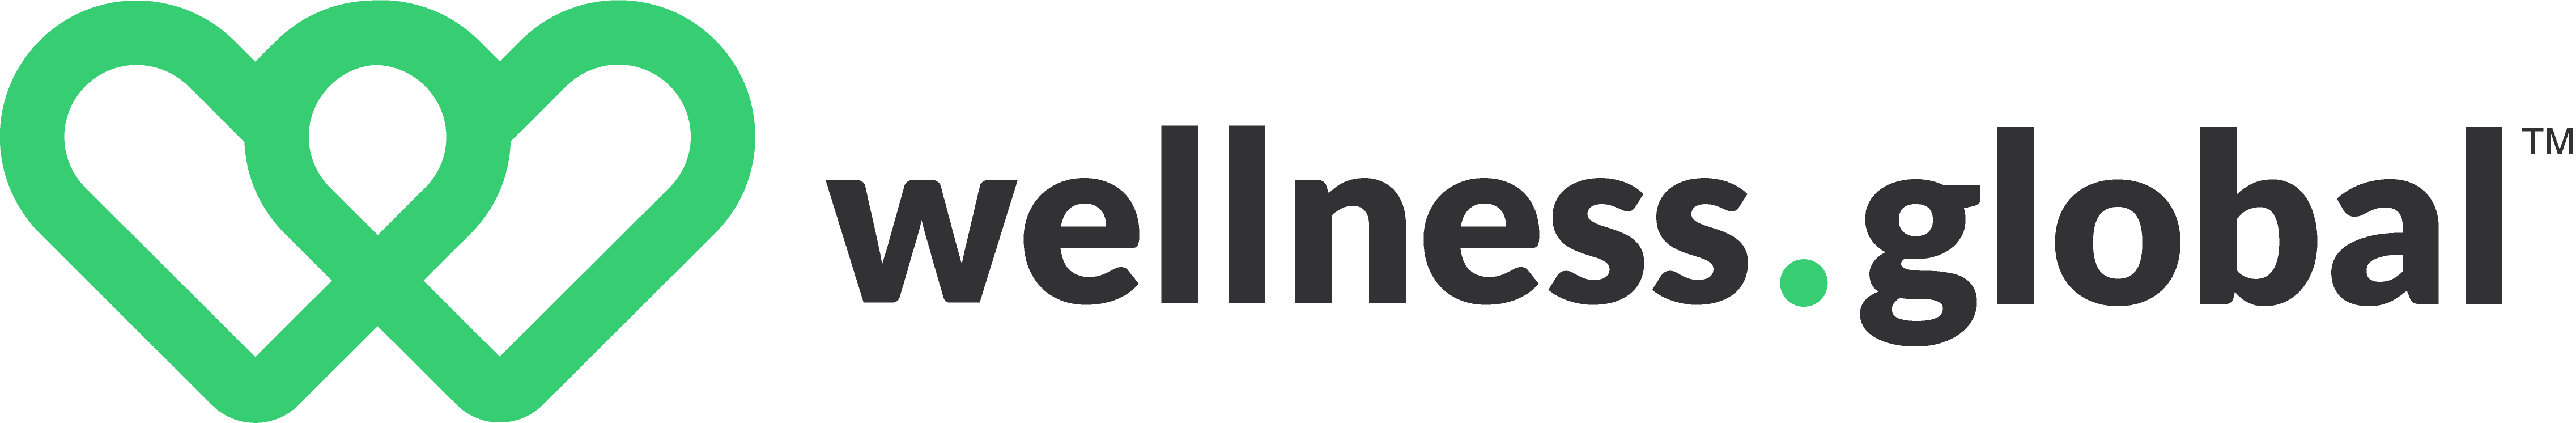 Seattle-Based Startup wellness.global to Make Disruptions to Wellness Last-Mile Delivery